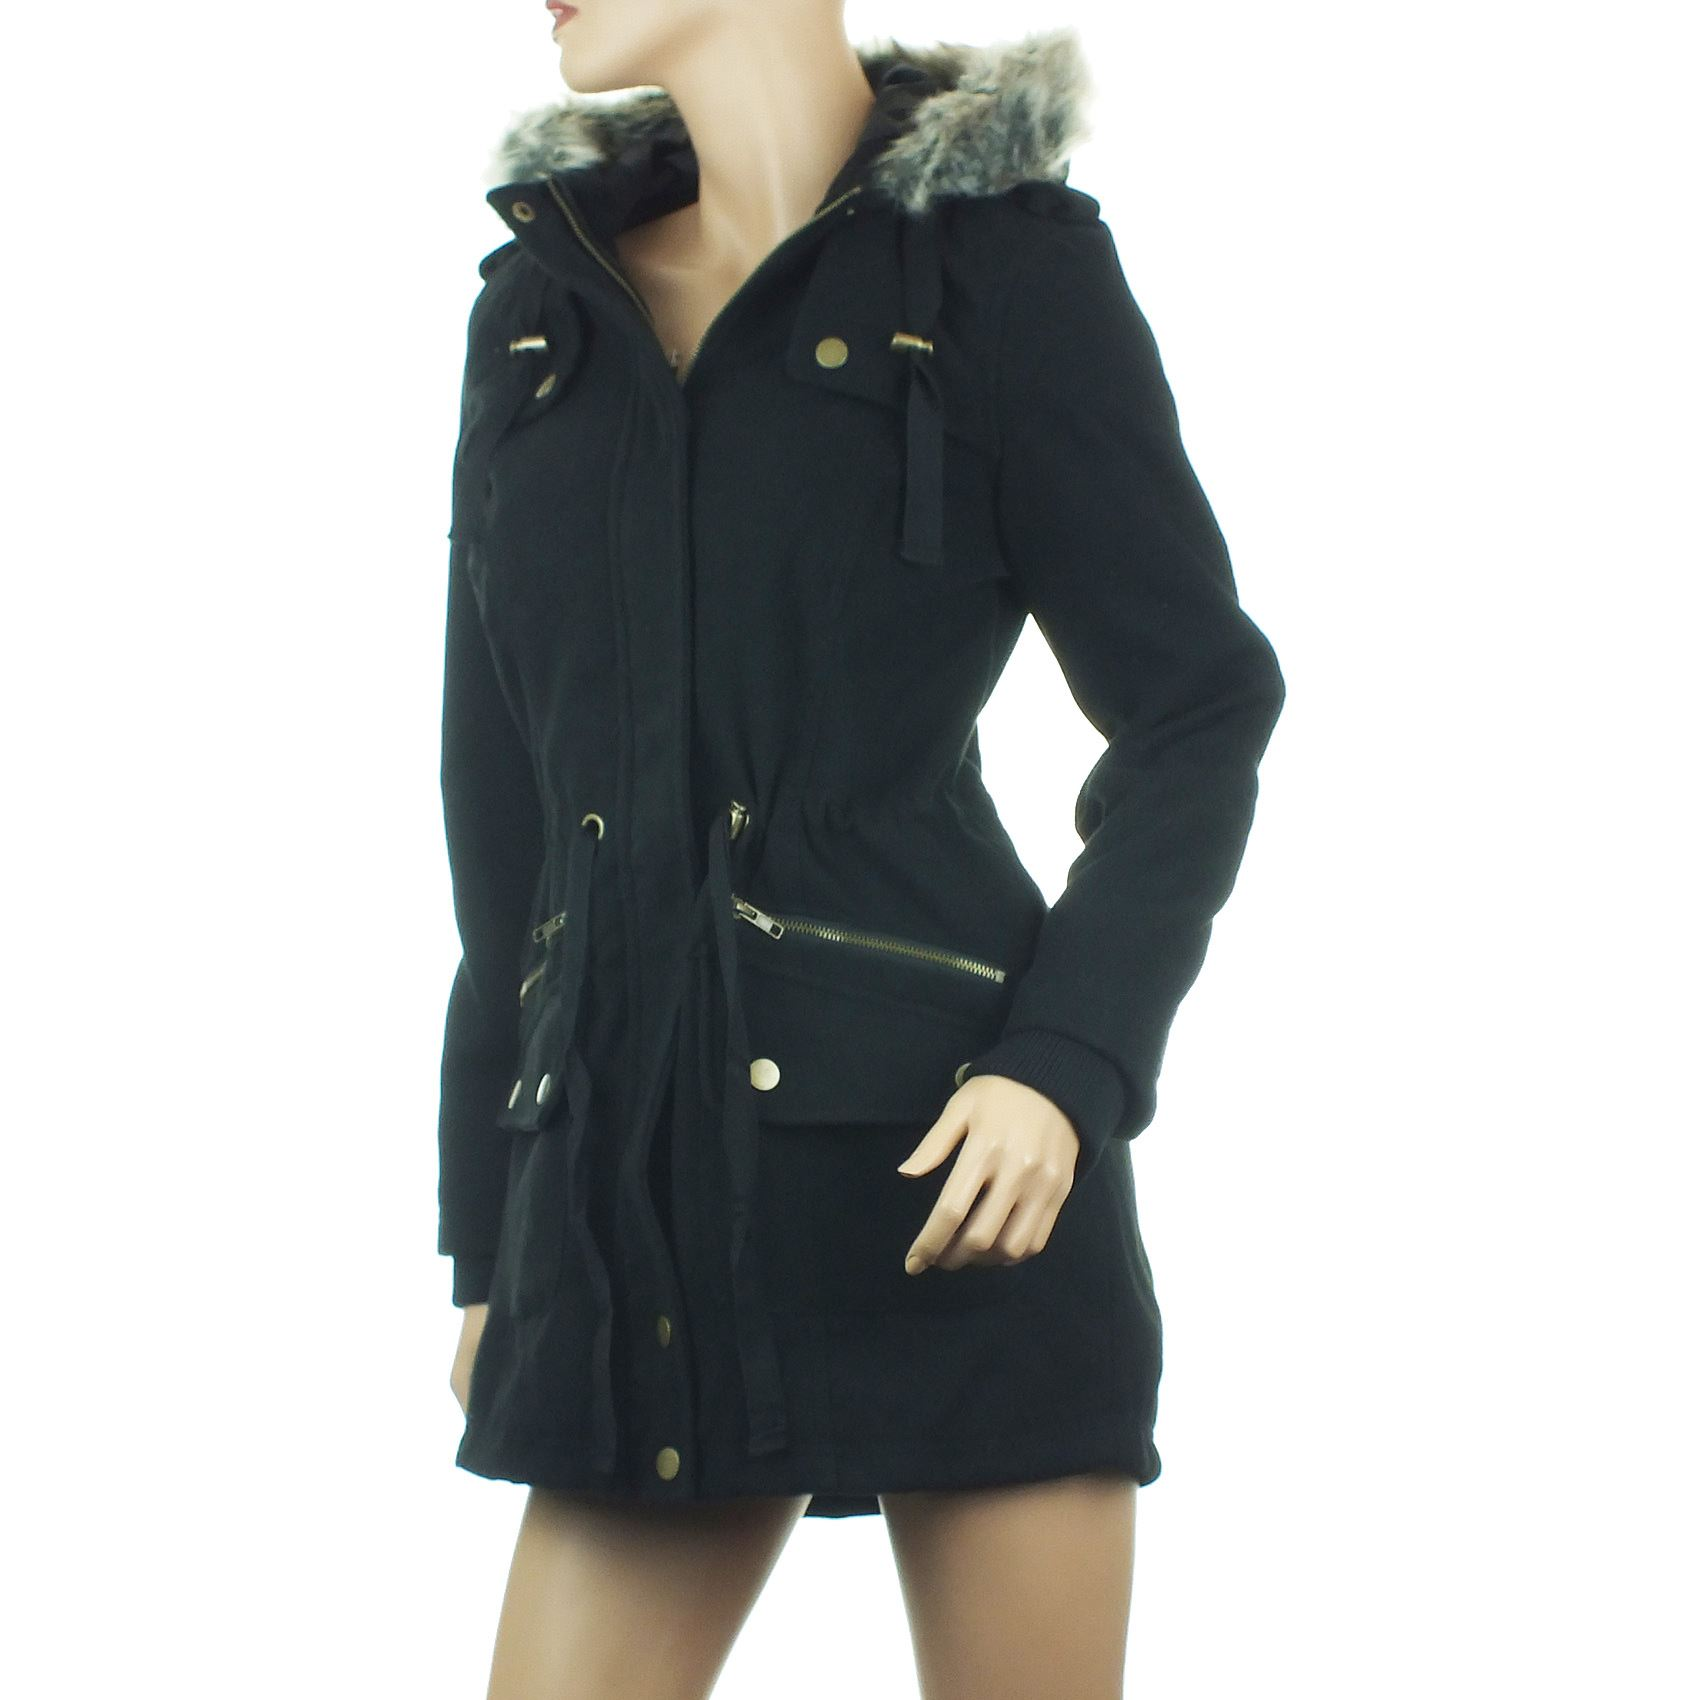 Womens Black Parka Coat Fur Hood - Sm Coats